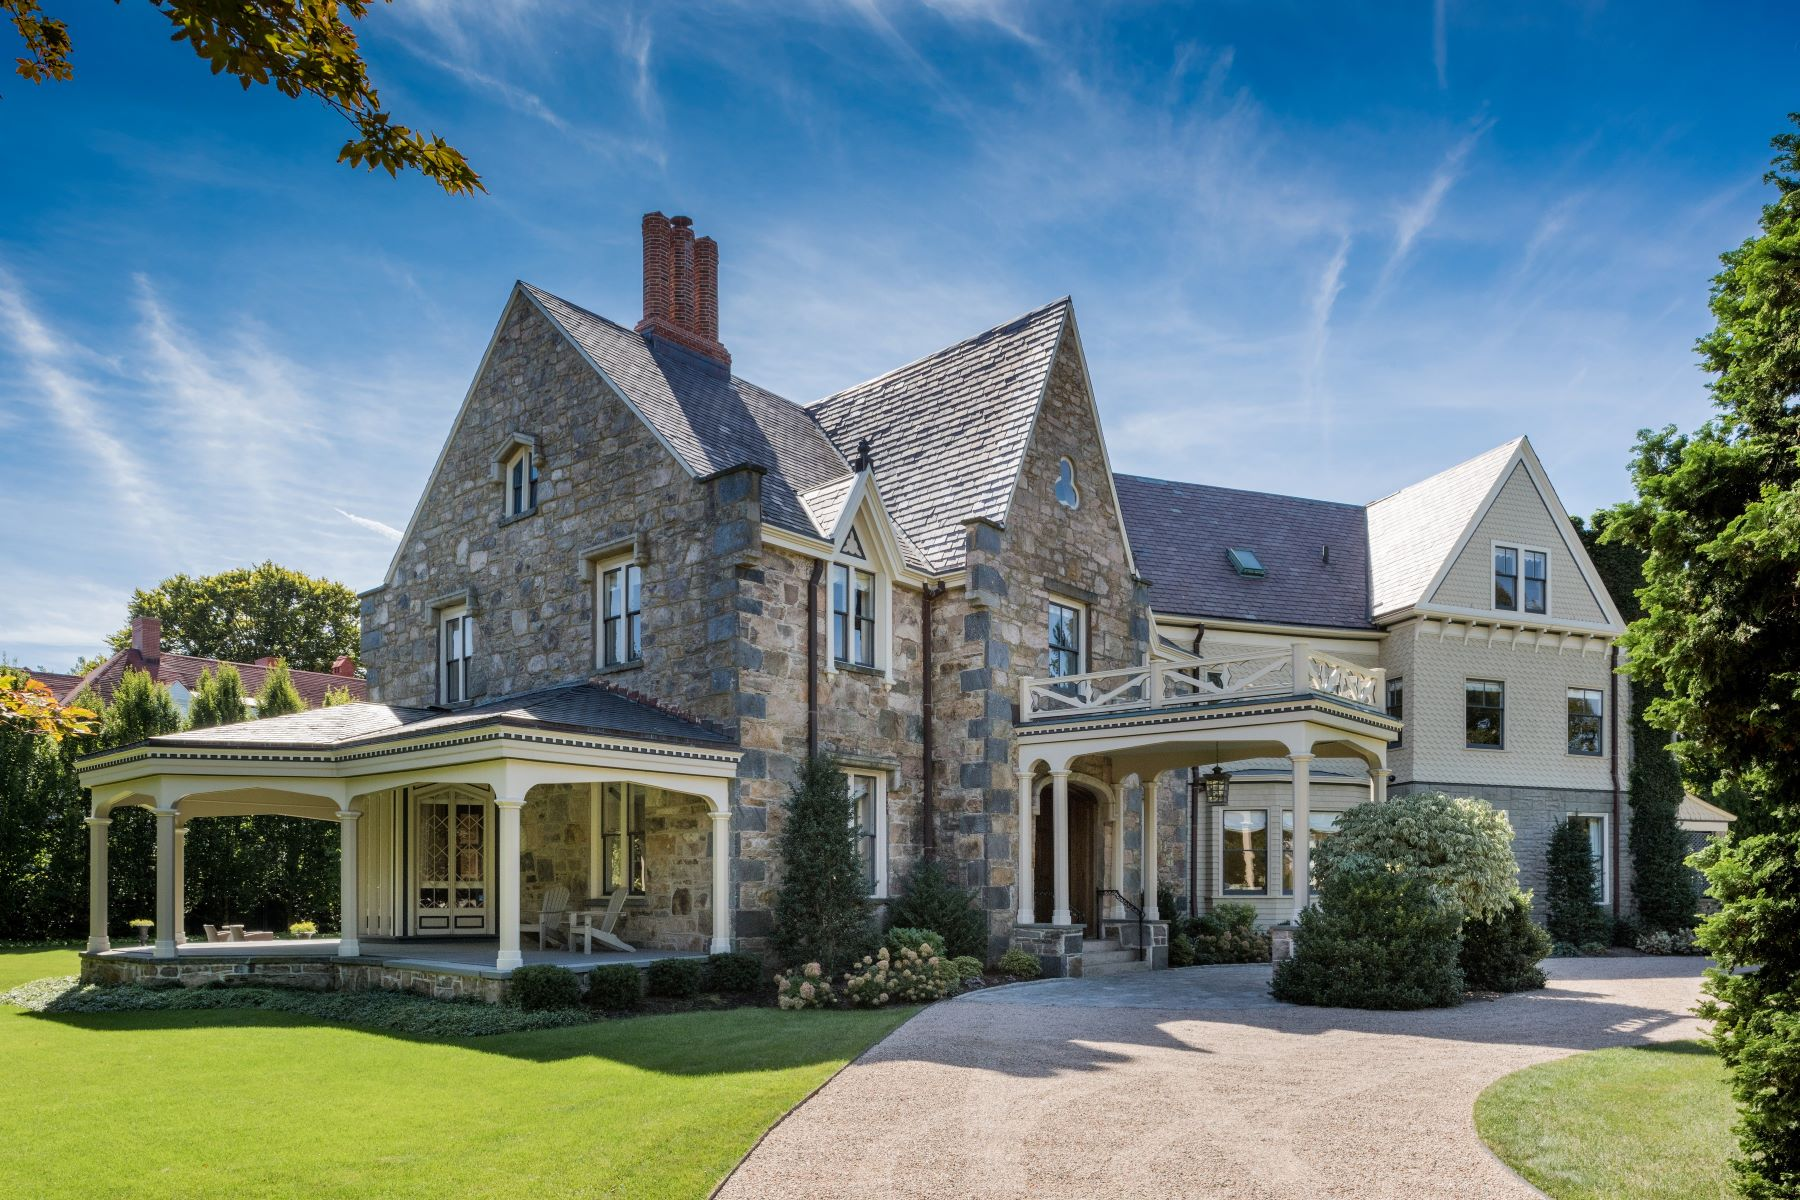 Single Family Home for Sale at Iconic Rockry Hall 425 Bellevue Avenue Newport, Rhode Island 02840 United States